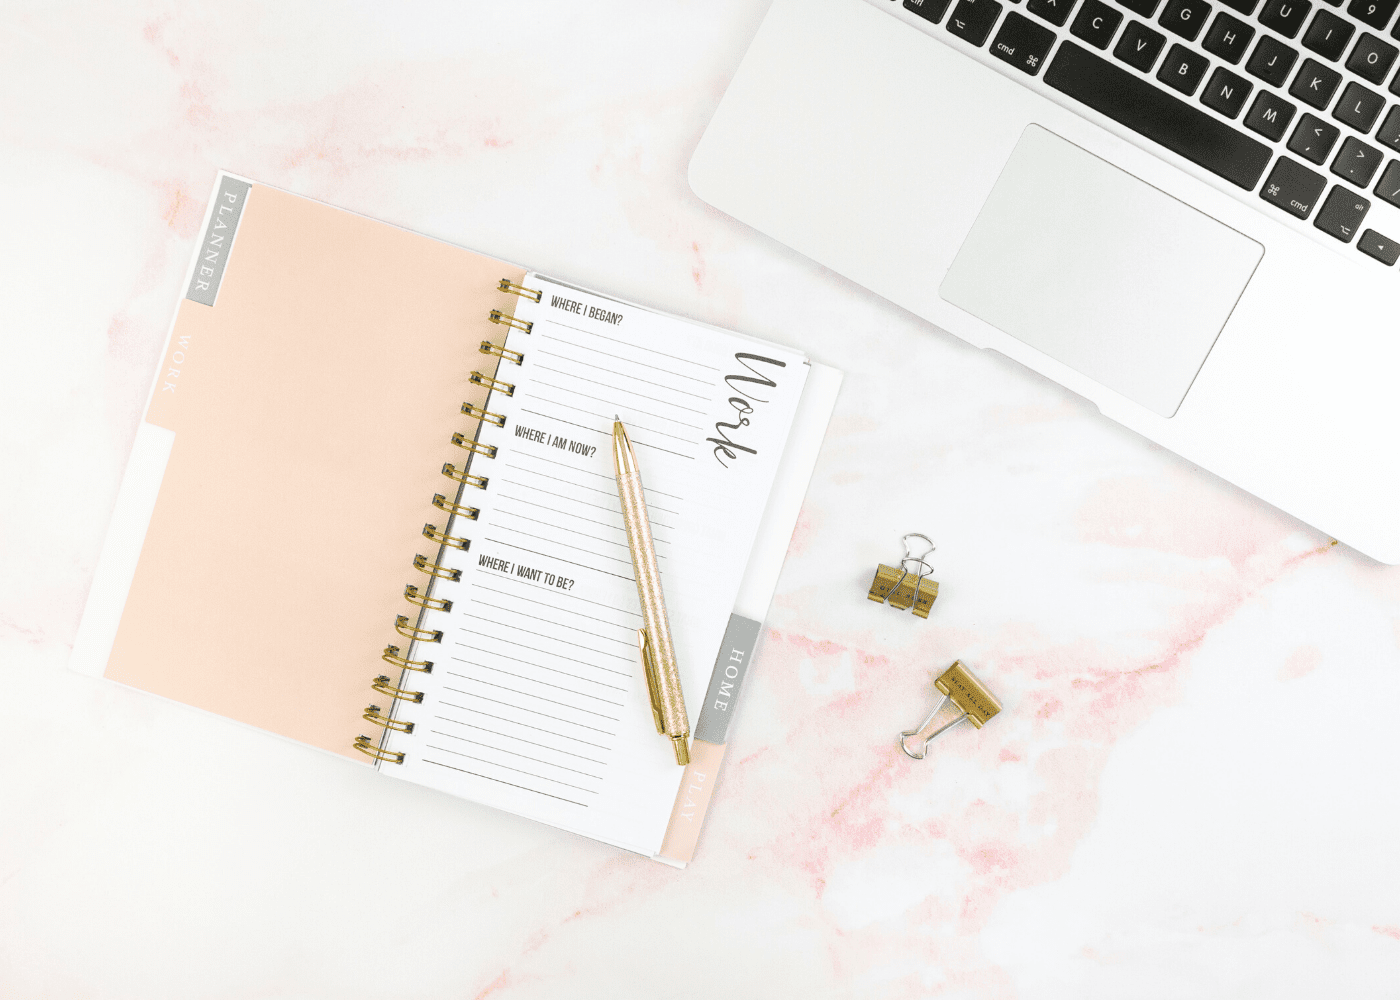 Plan your agenda for the day | Tried and tested: Productivity tips for working from home